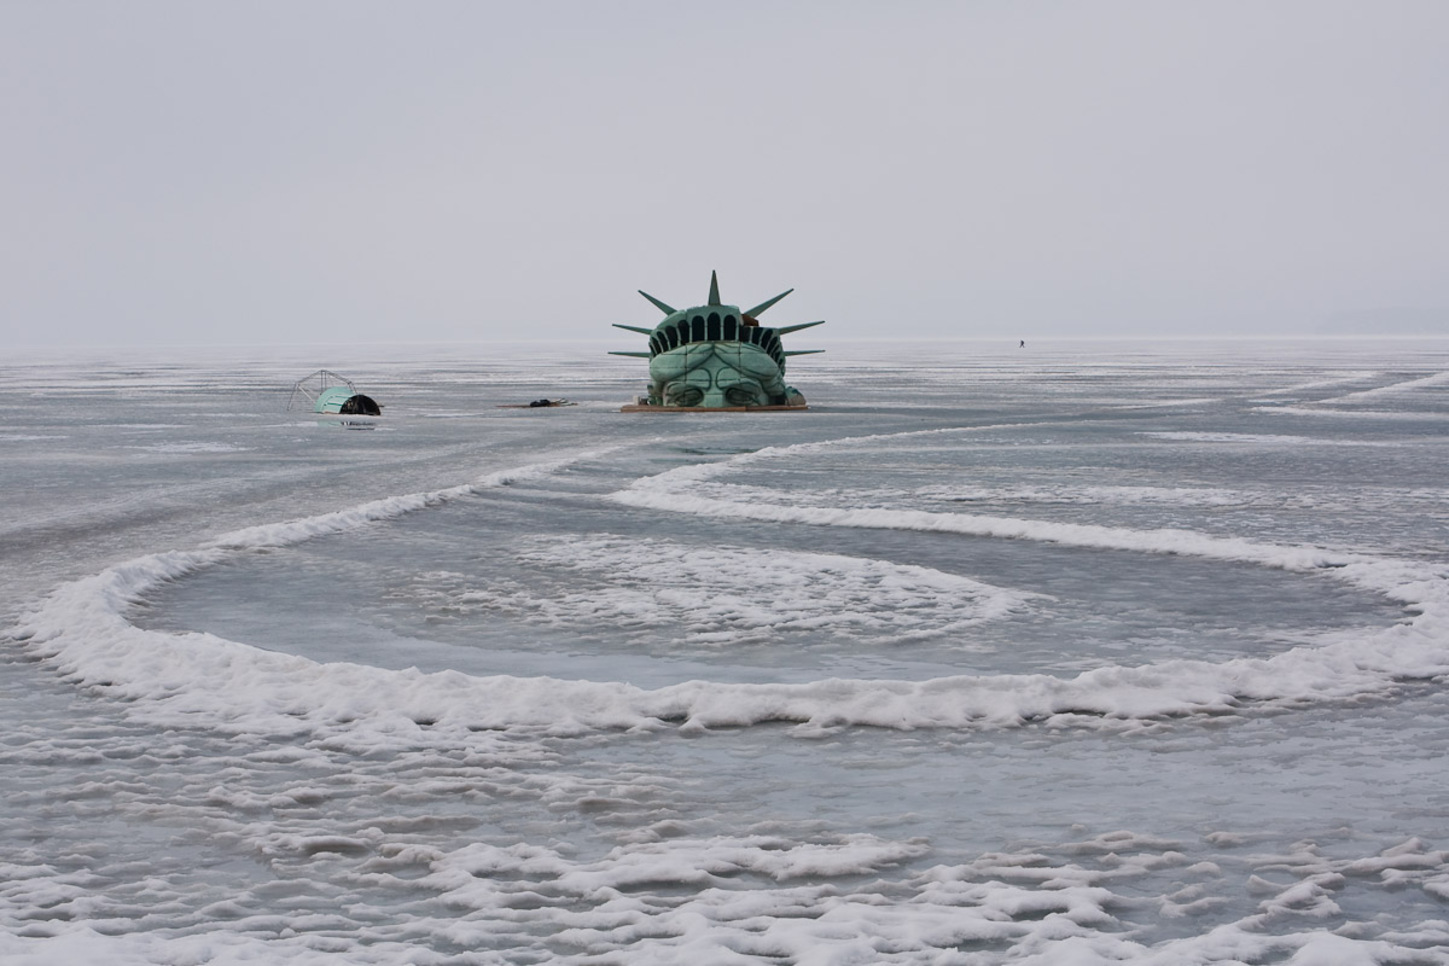 global warming 6 degrees could change Science has offered hope that global warming would  published in nature climate change in the arctic,  took less warming, 6 degrees c.